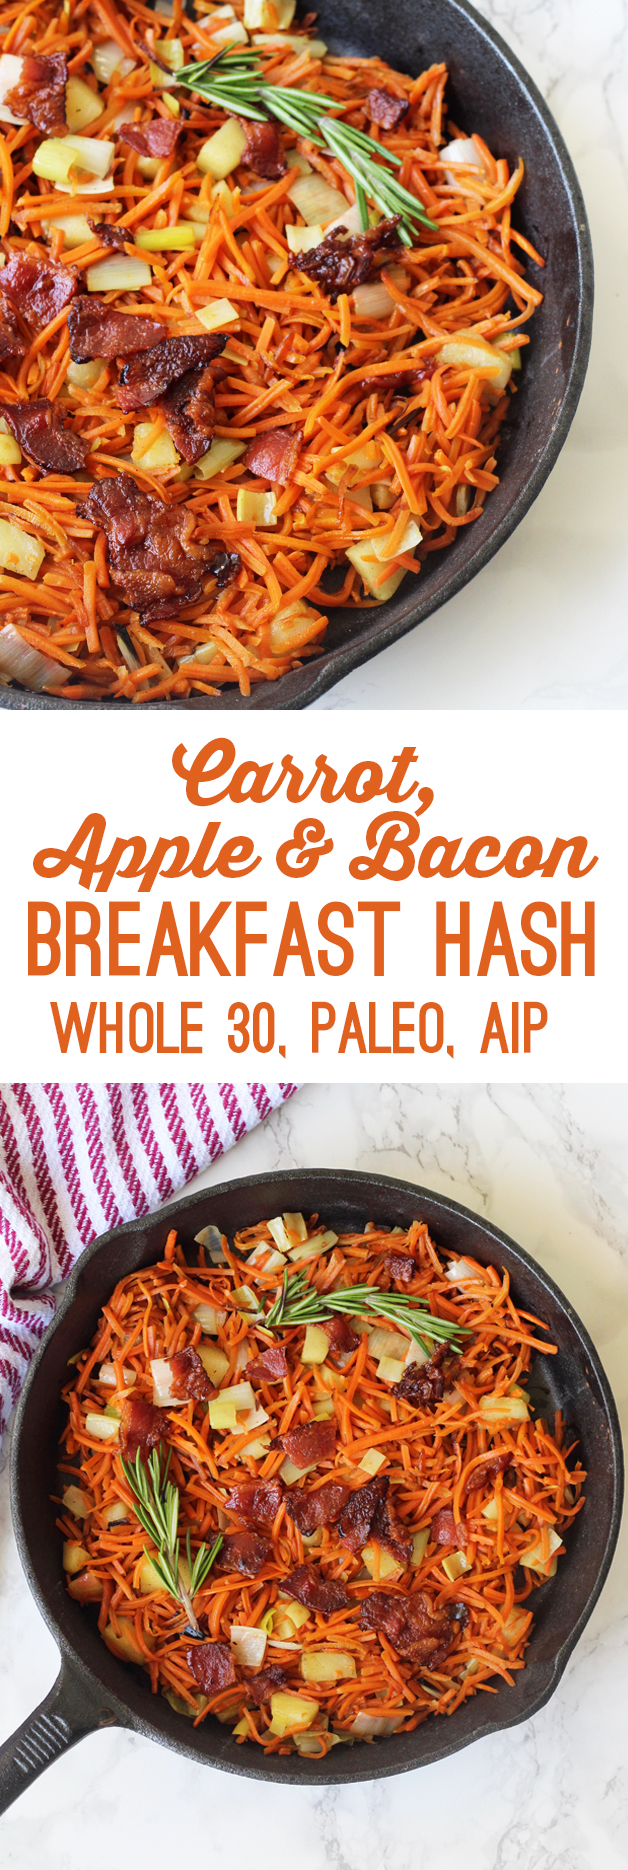 Carrot Apple Bacon Breakfast Hash (Whole 30, Paleo, AIP)